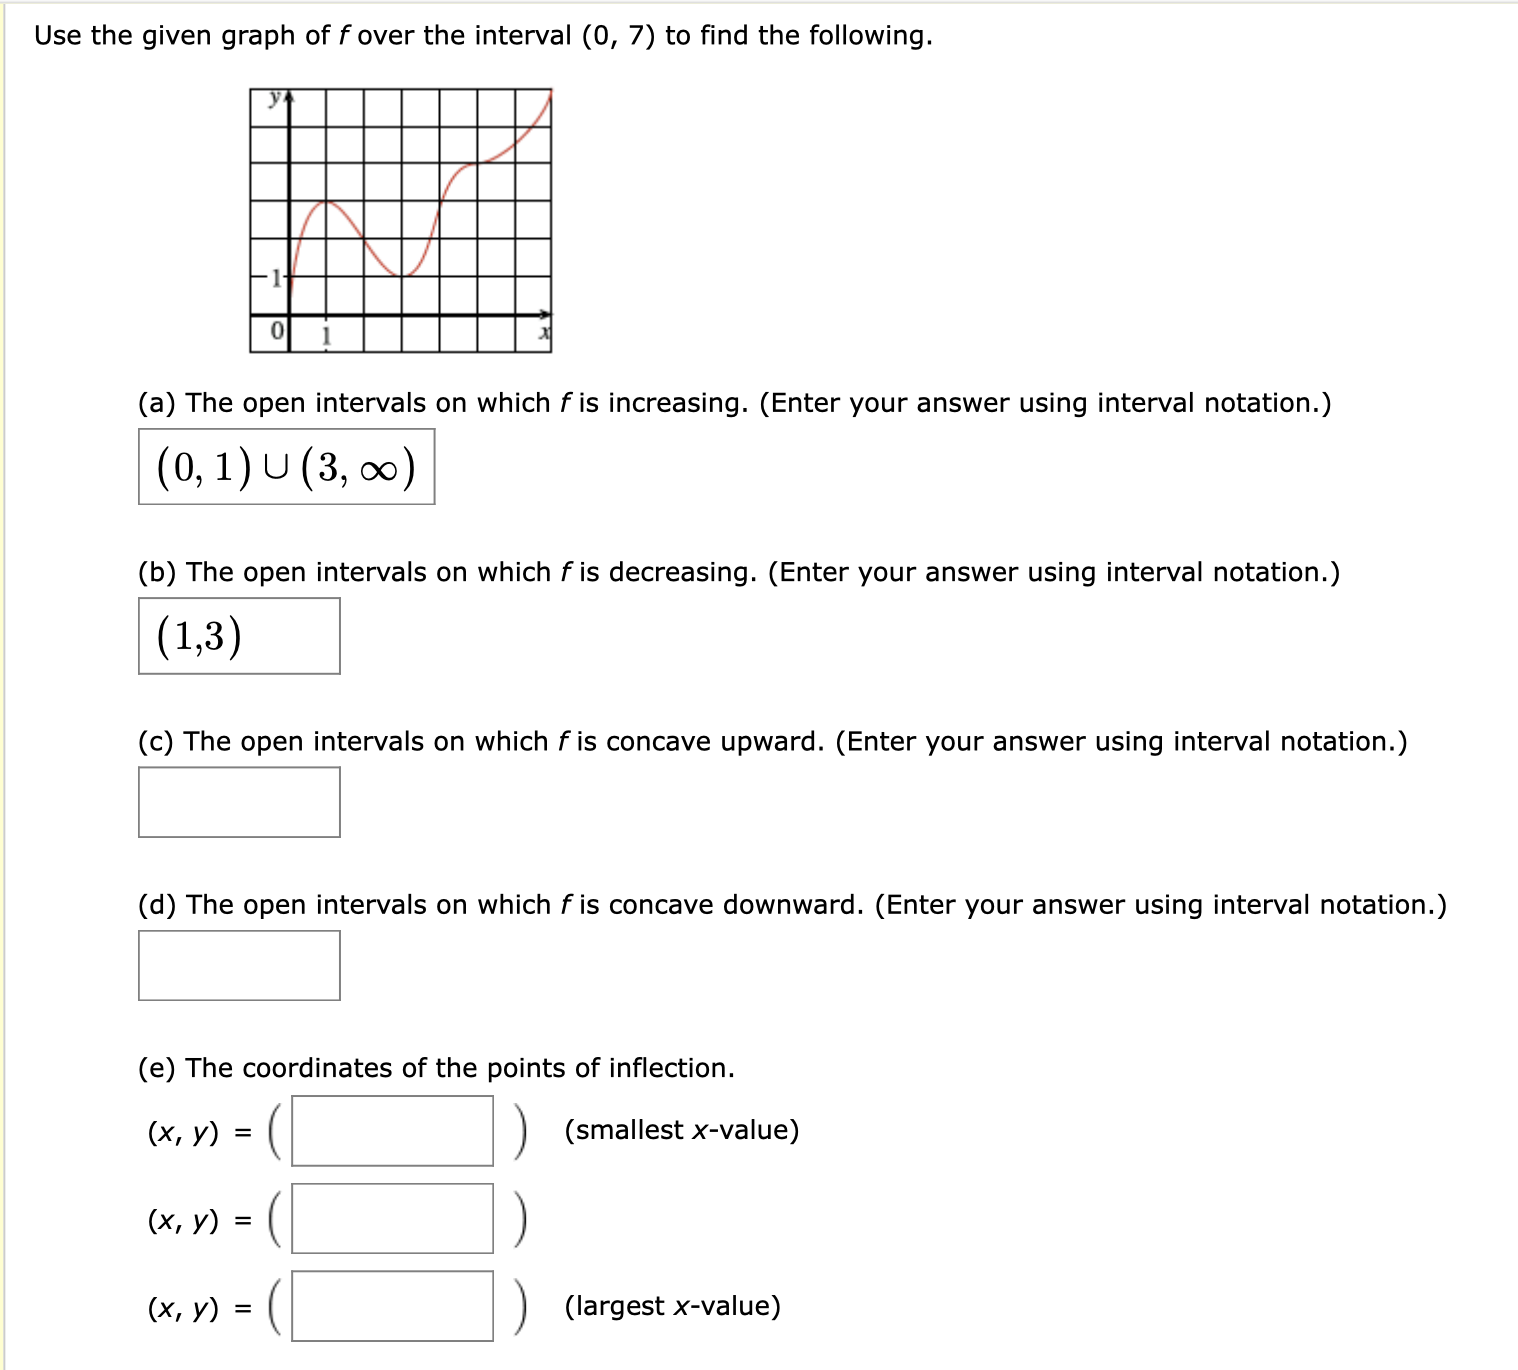 Use the given graph of fover the interval (0, 7) to find the following. (a) The open intervals on which f is increasing. (Enter your answer using interval notation.) (0, 1)U (3, oo) (b) The open intervals on which f is decreasing. (Enter your answer using interval notation.) (1,3) (c) The open intervals on which f is concave upward. (Enter your answer using interval notation.) (d) The open intervals on which f is concave downward. (Enter your answer using interval notation.) (e) The coordinates of the points of inflection (х, у) (smallest x-value) (х, у) %3 (х, у) %3 (largest x-value)